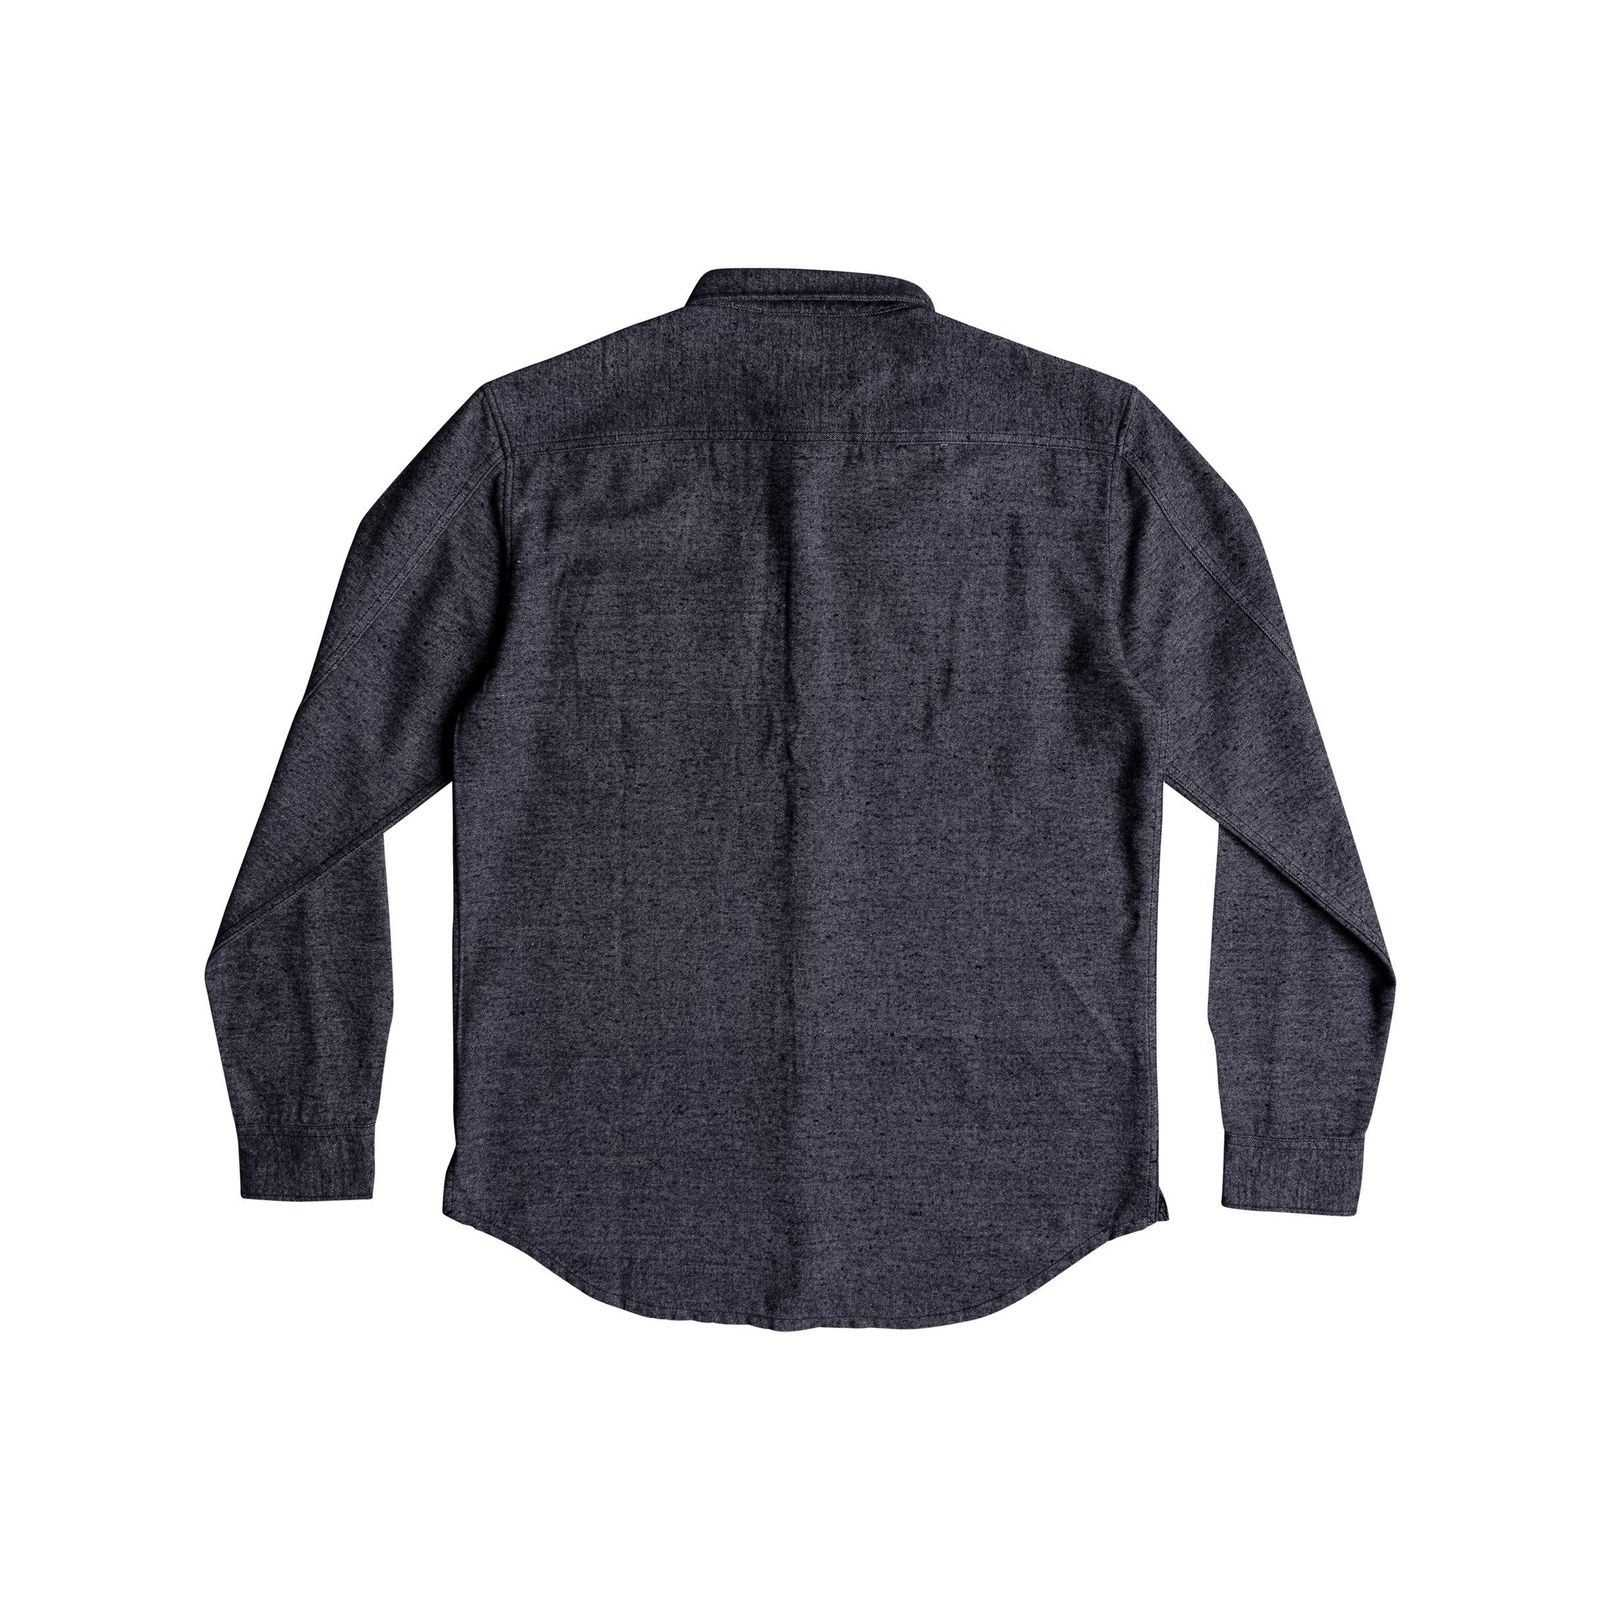 V Homme Manches Quiksilver Chemise LonguesAnthracite nONyv0wPm8